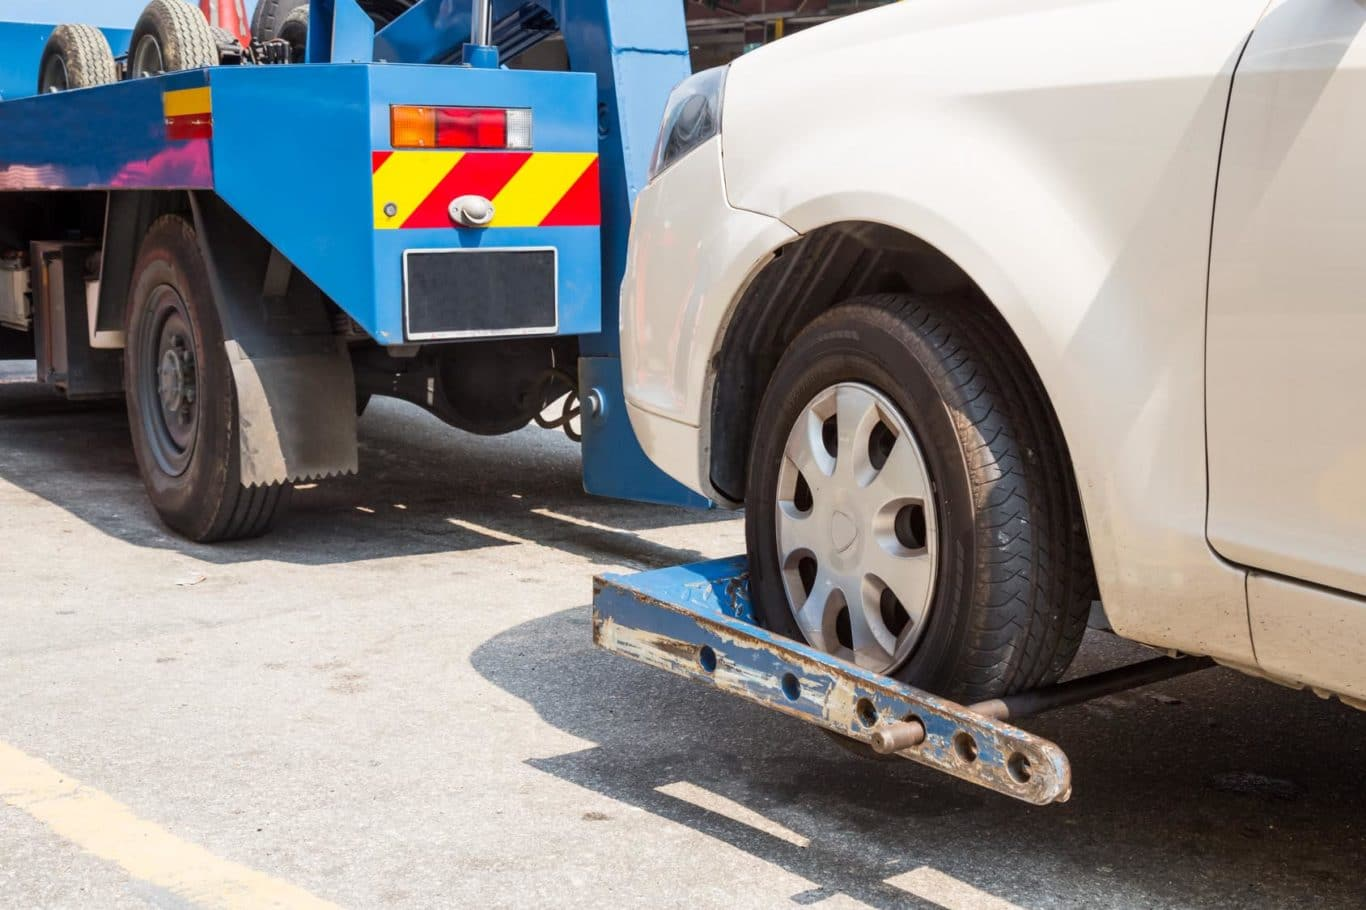 Greenore expert Roadside Assistance services